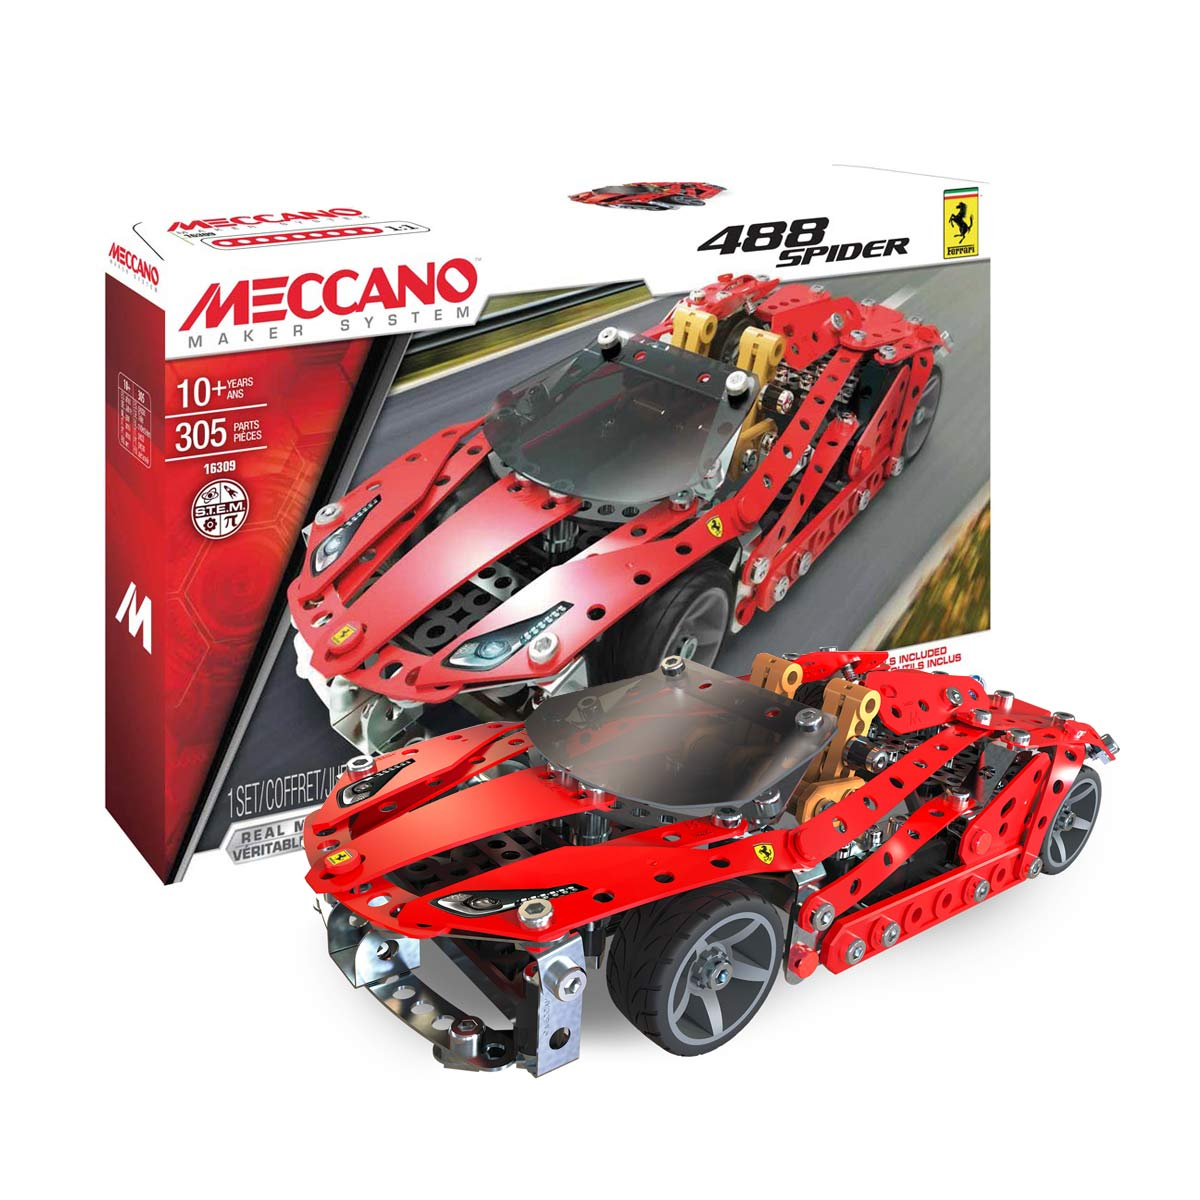 MECCANO FERRARI 488 SPIDER Review